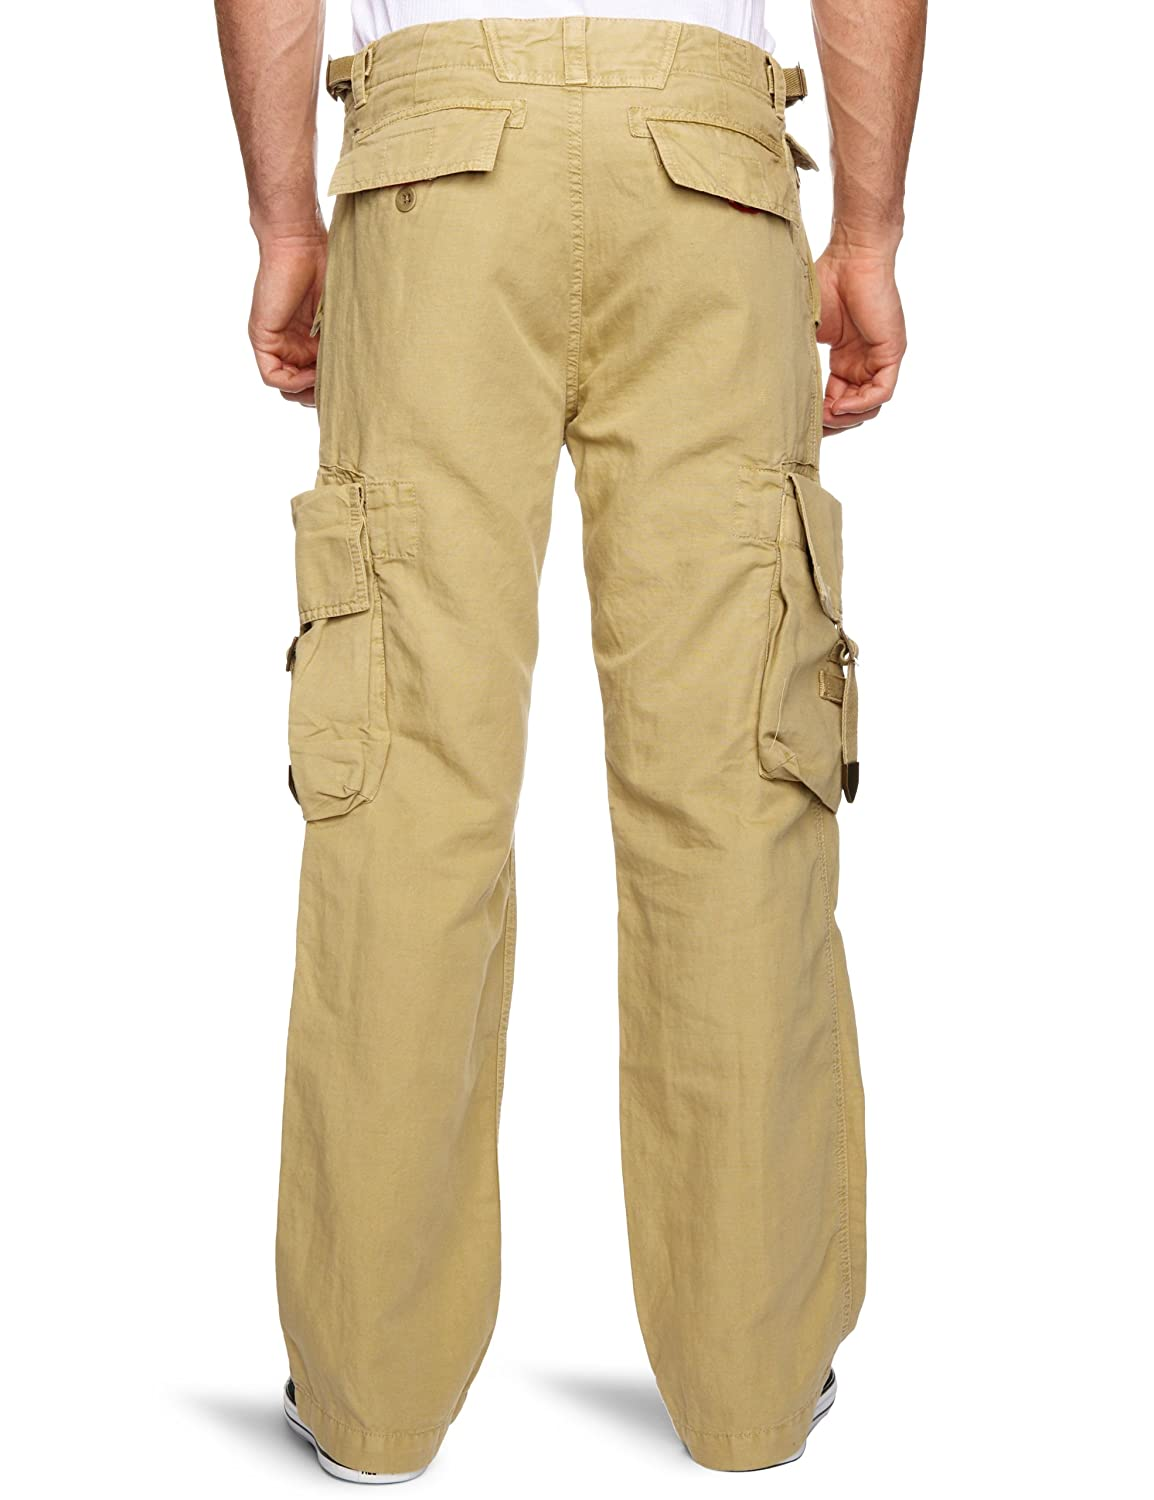 6243a6ffd91 Timberland Men's Cotton/Linen Cargo Pant Straight Brown W32 x L32:  Amazon.co.uk: Clothing